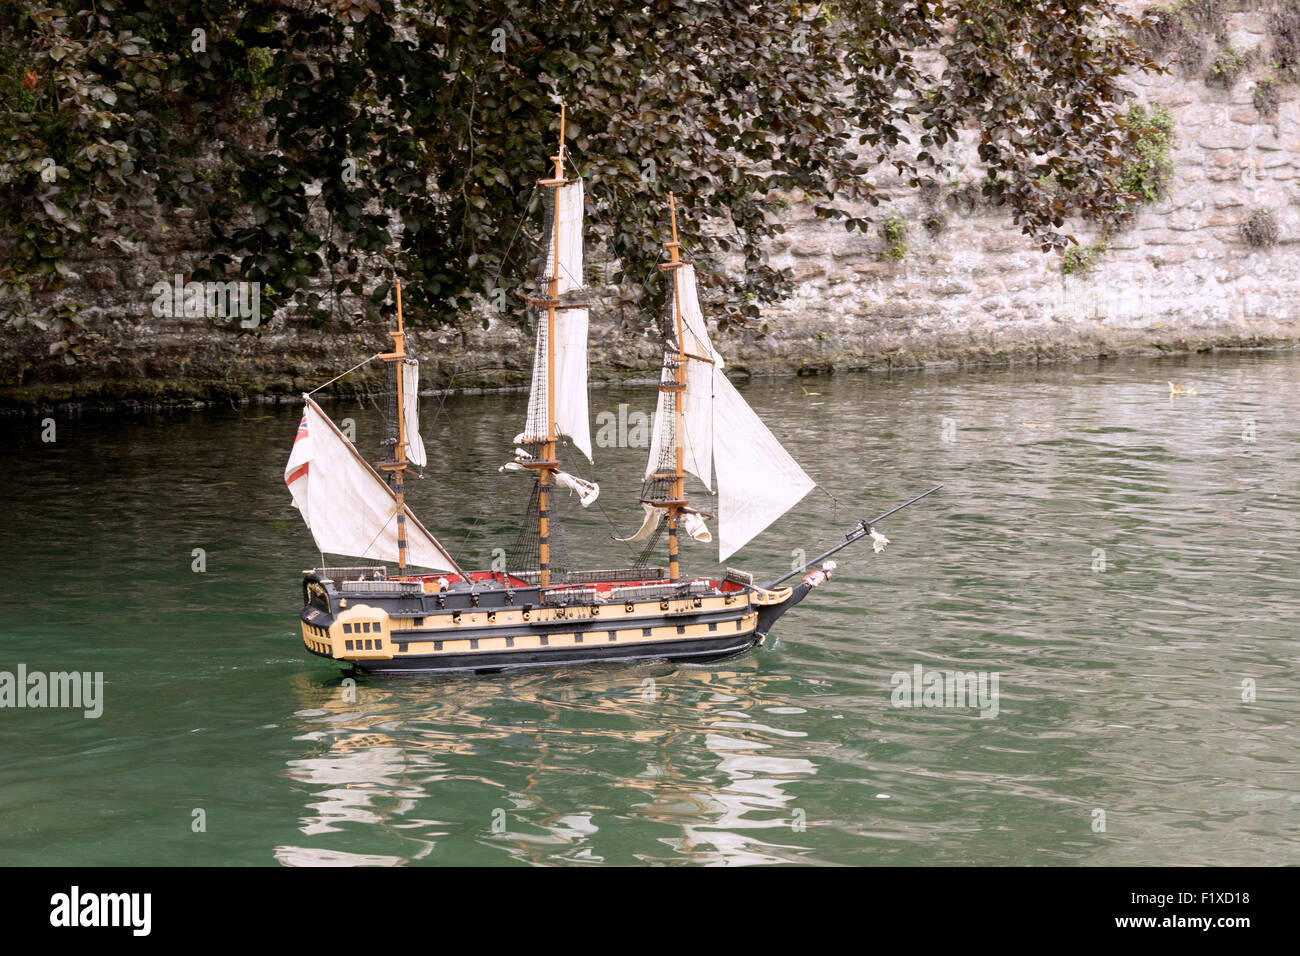 A radio controlled model Elizabethan galleon boat in the moat, Wells Somerset UK - Stock Image